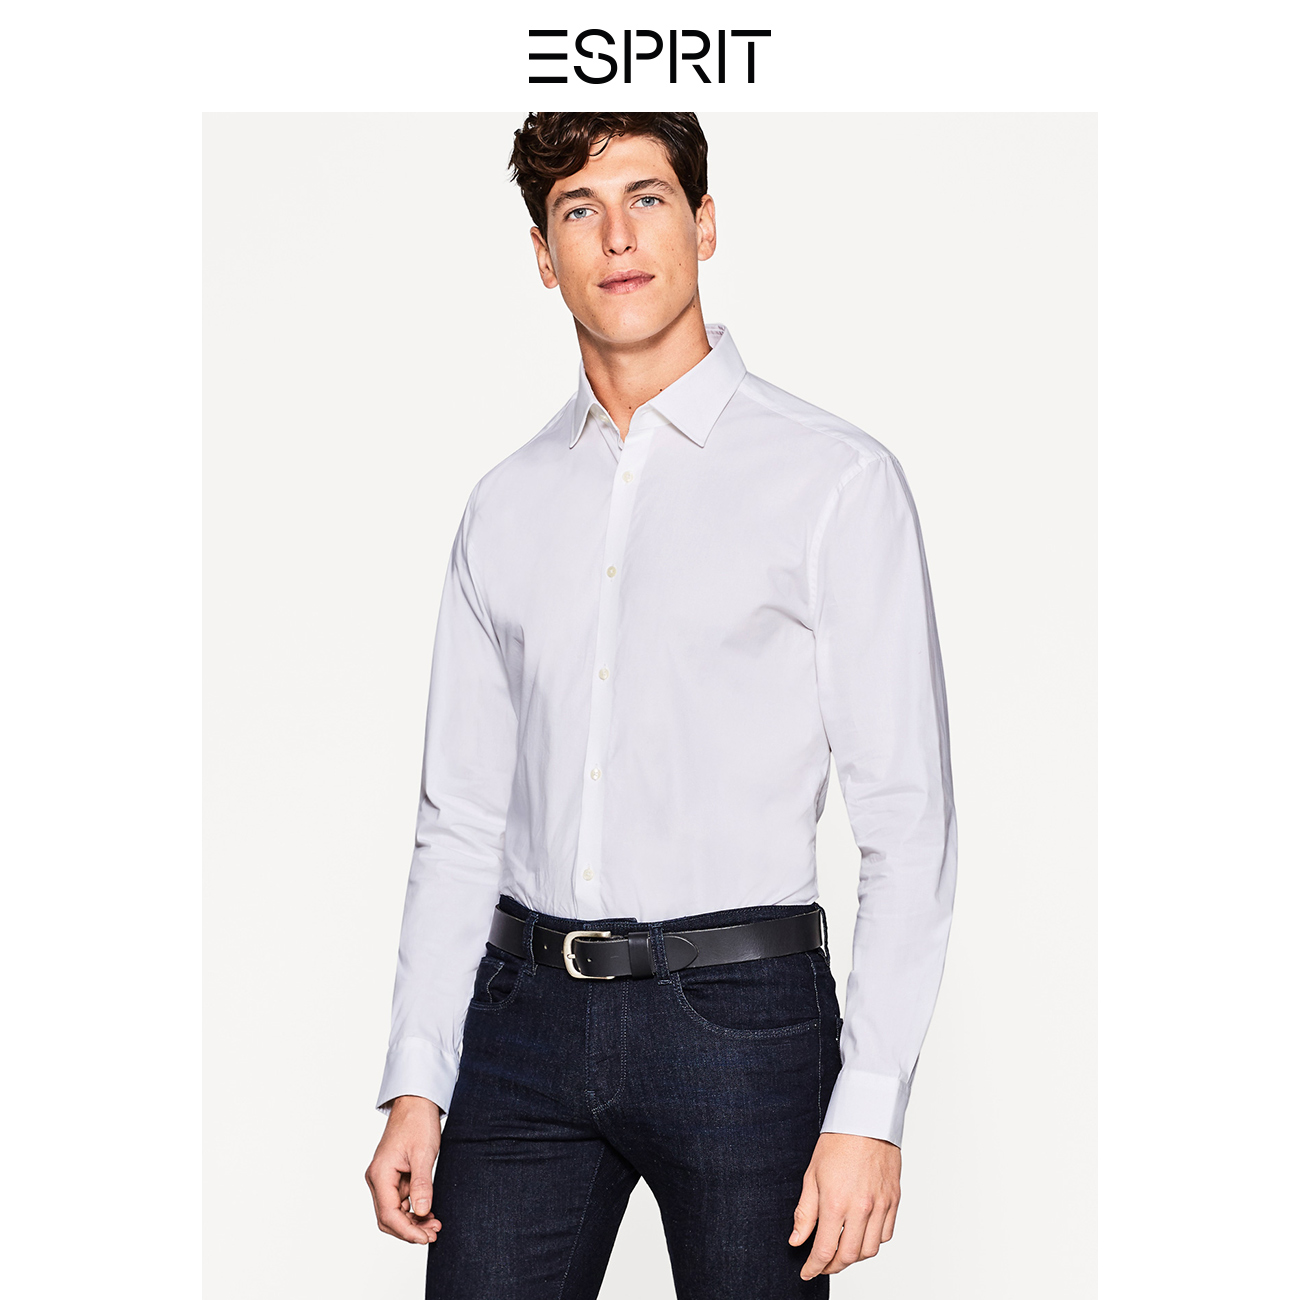 66ec79fa24e ESPRIT men s solid color simple business casual loose men s long sleeve  tops shirt-998EO2F800 · Zoom · lightbox moreview · lightbox moreview ...